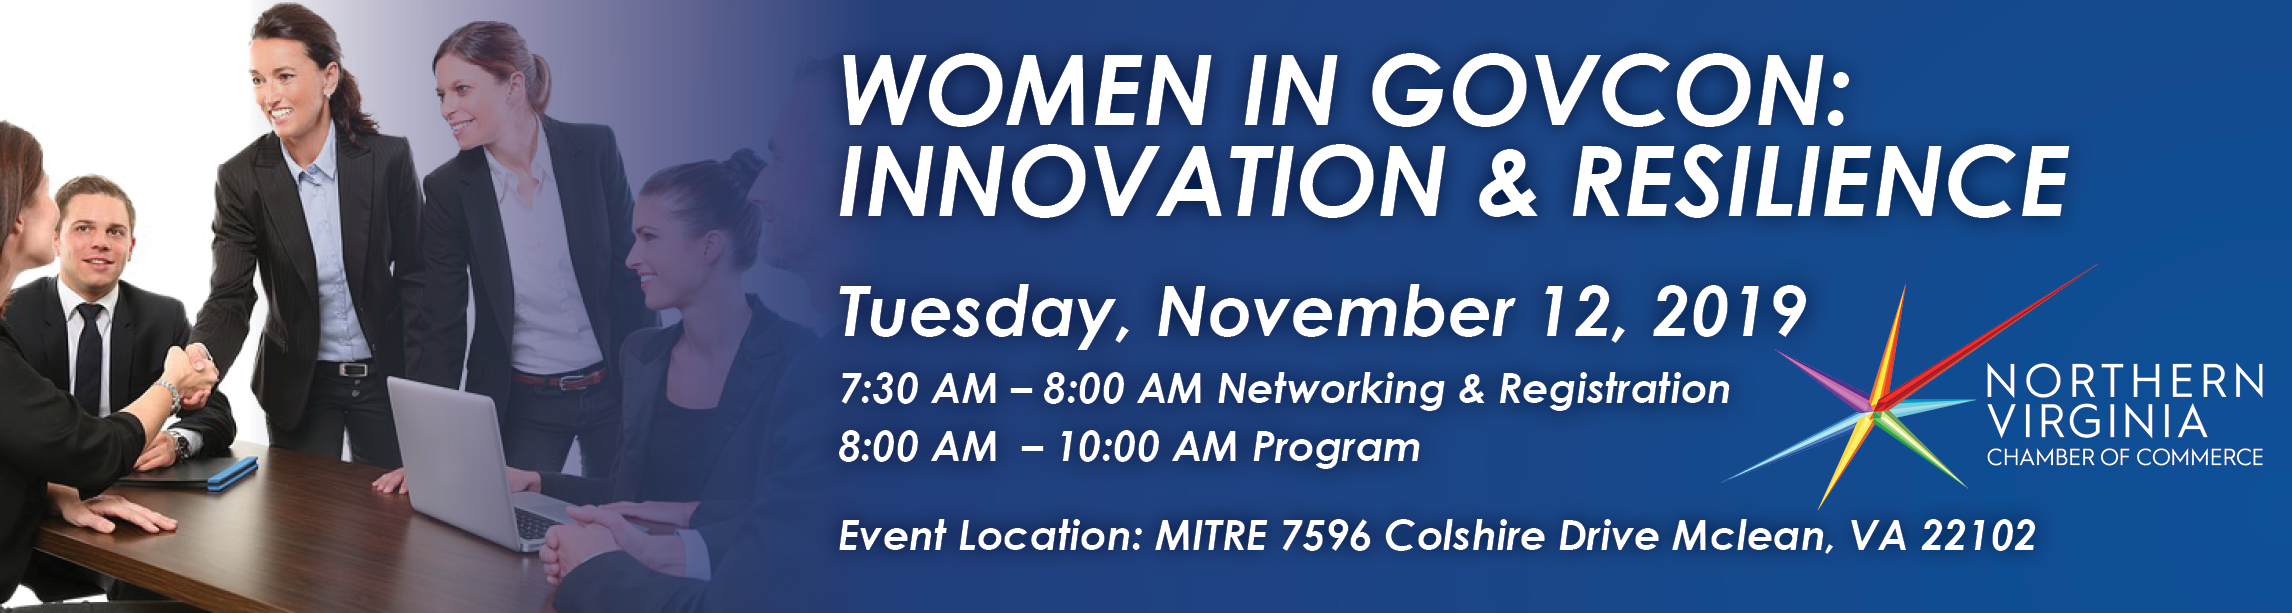 Women in GovCon - Innovation & Resilience